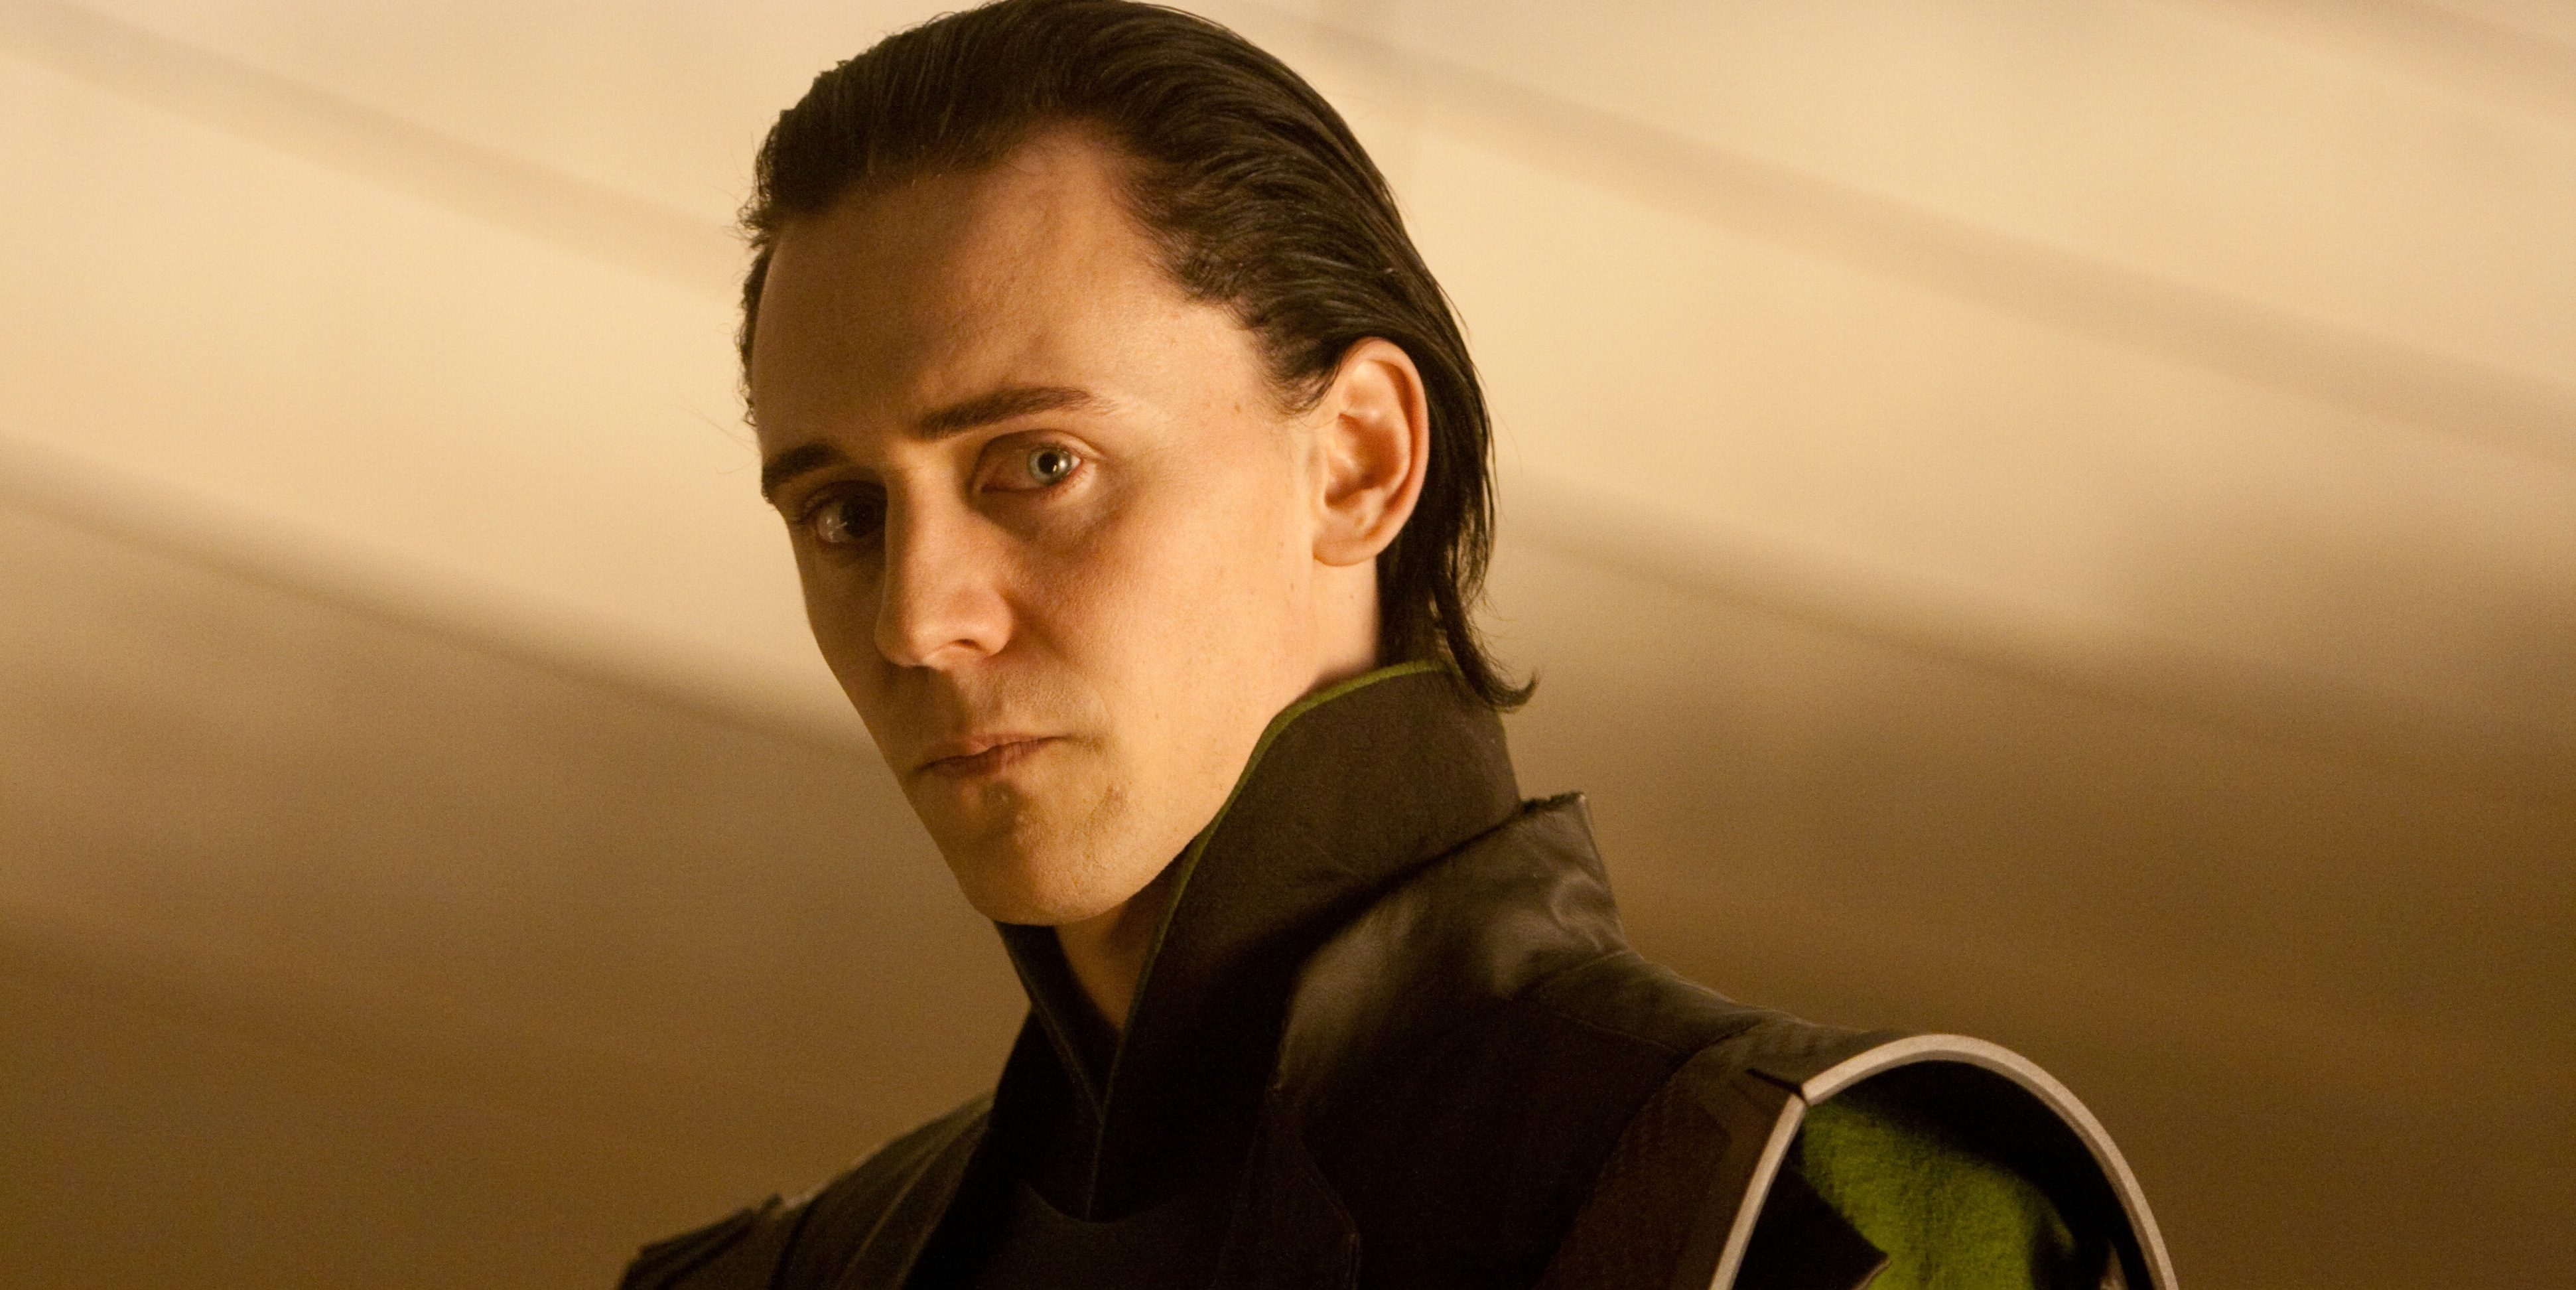 Avengers actor Hiddleston defends superhero films as art in Guardian editorial